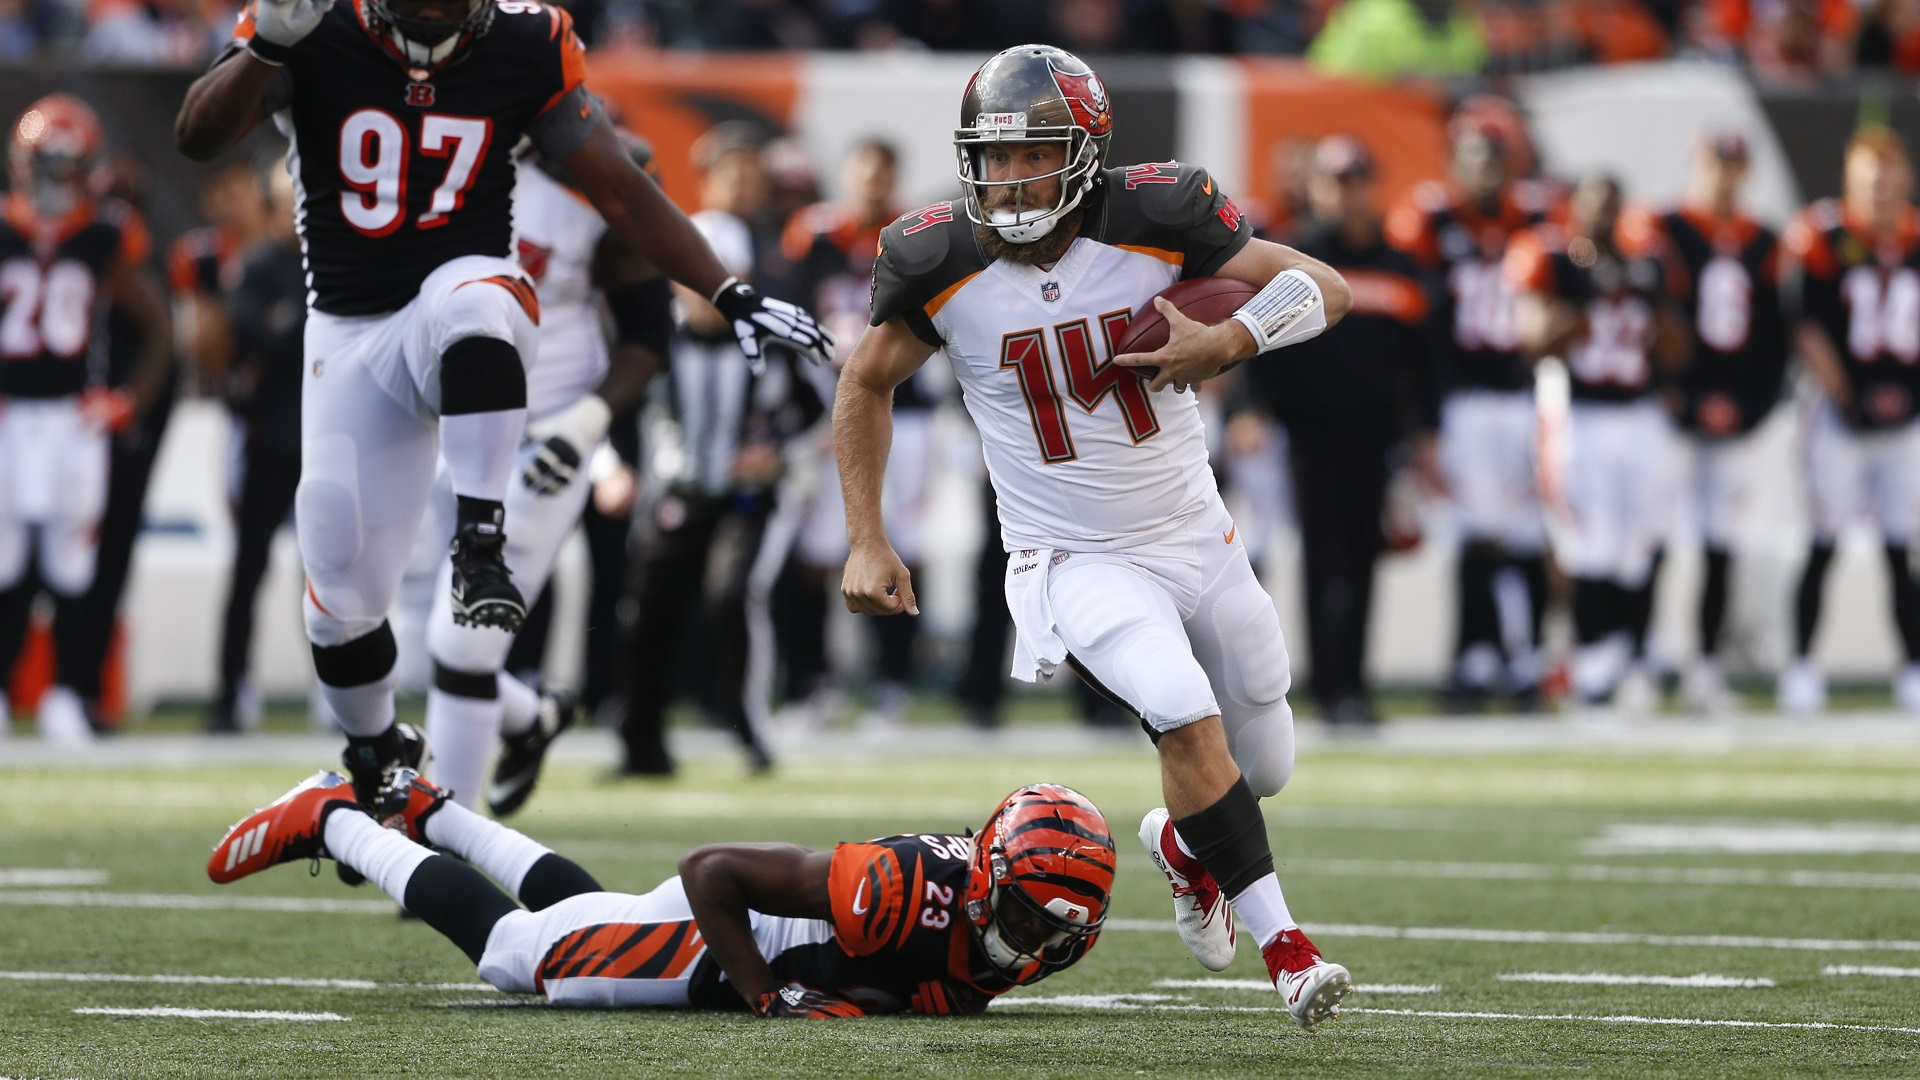 e5e5f0d1 Fitzpatrick to start for Bucs in Week 9 against Panthers